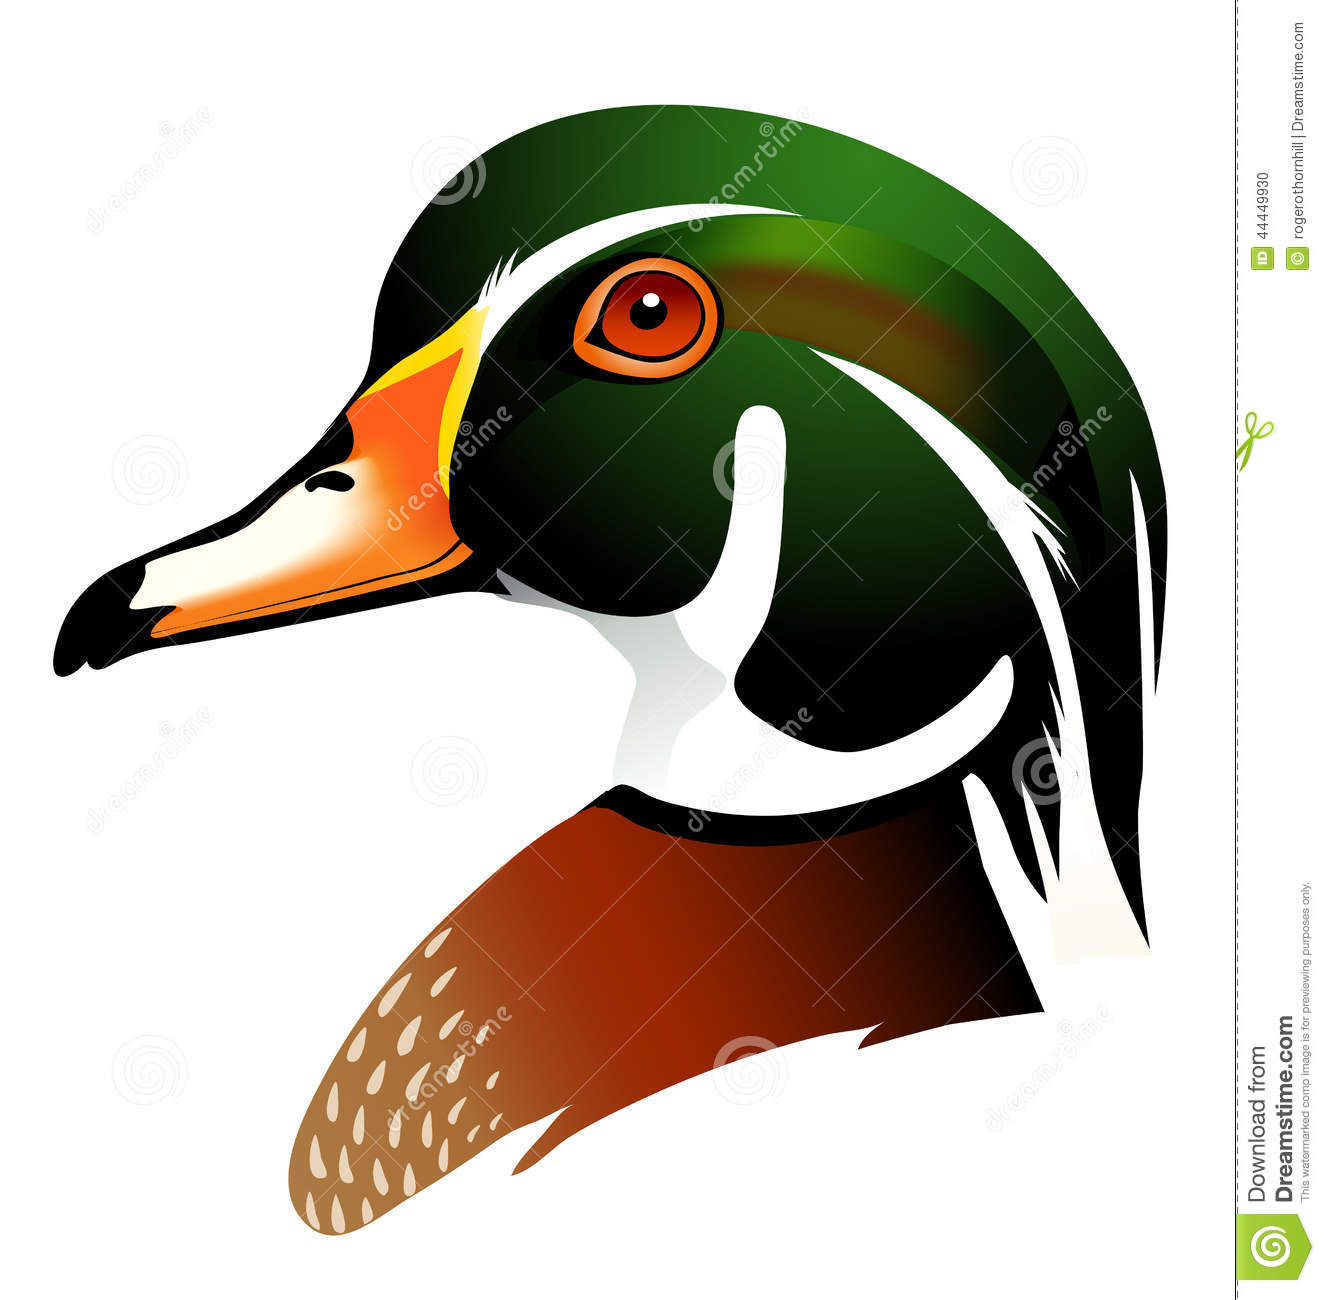 Vector Illustration Of Wood Duck Stock Vector.